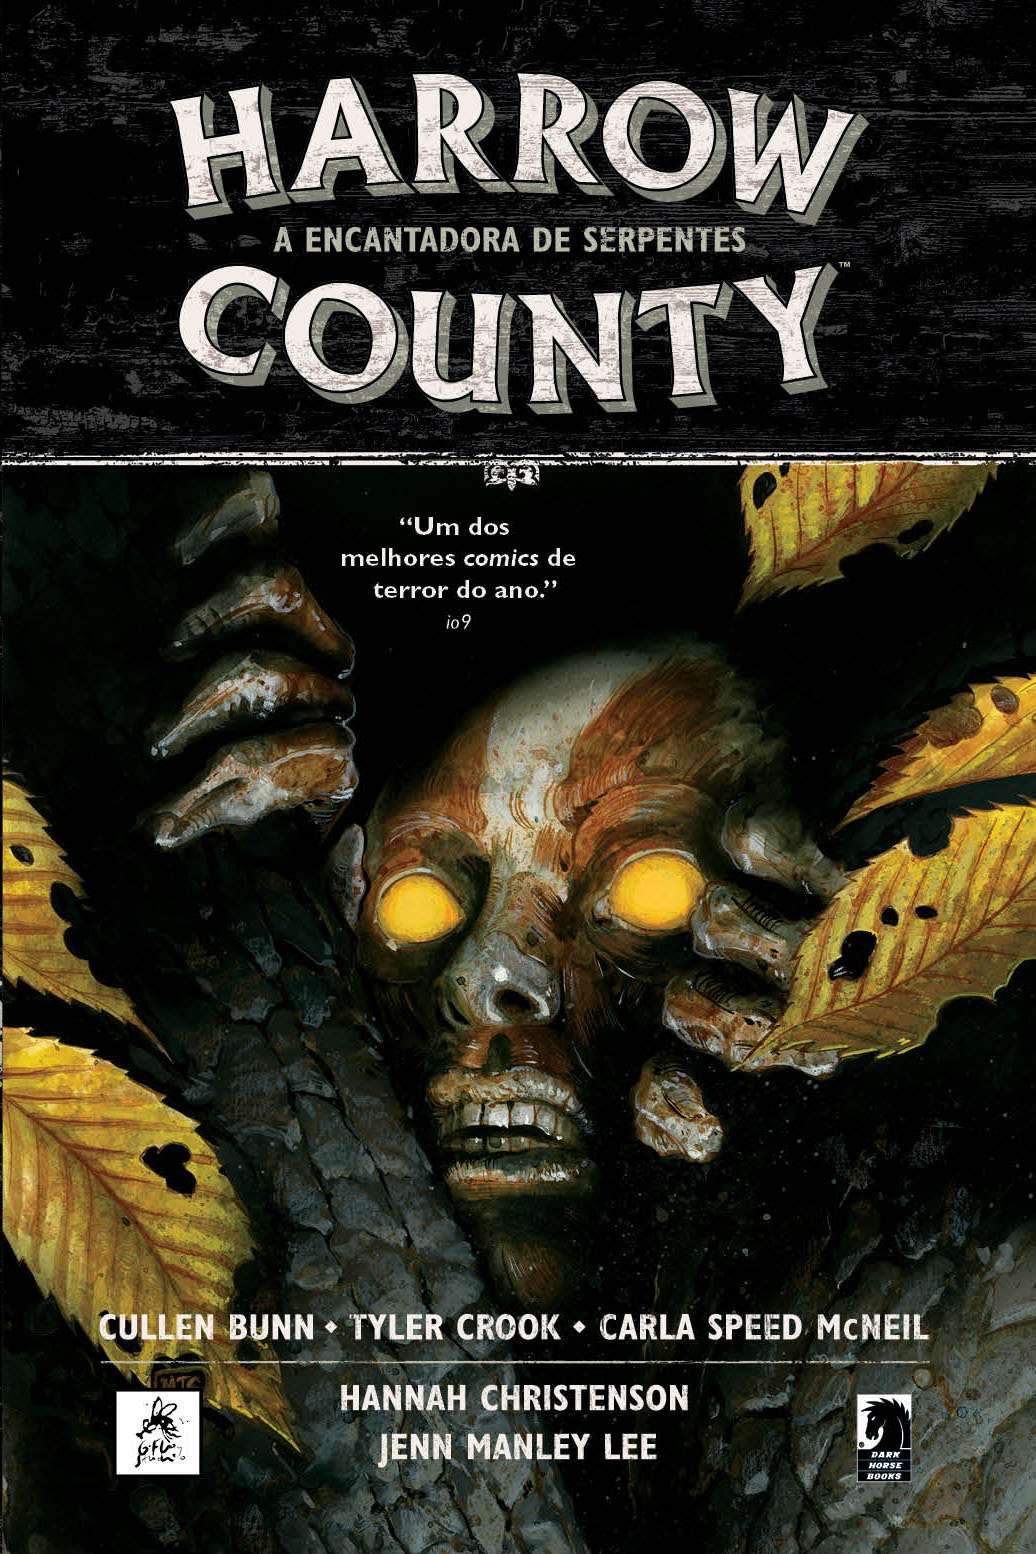 HARROW COUNTY volume 3: A Encantadora de Serpentes